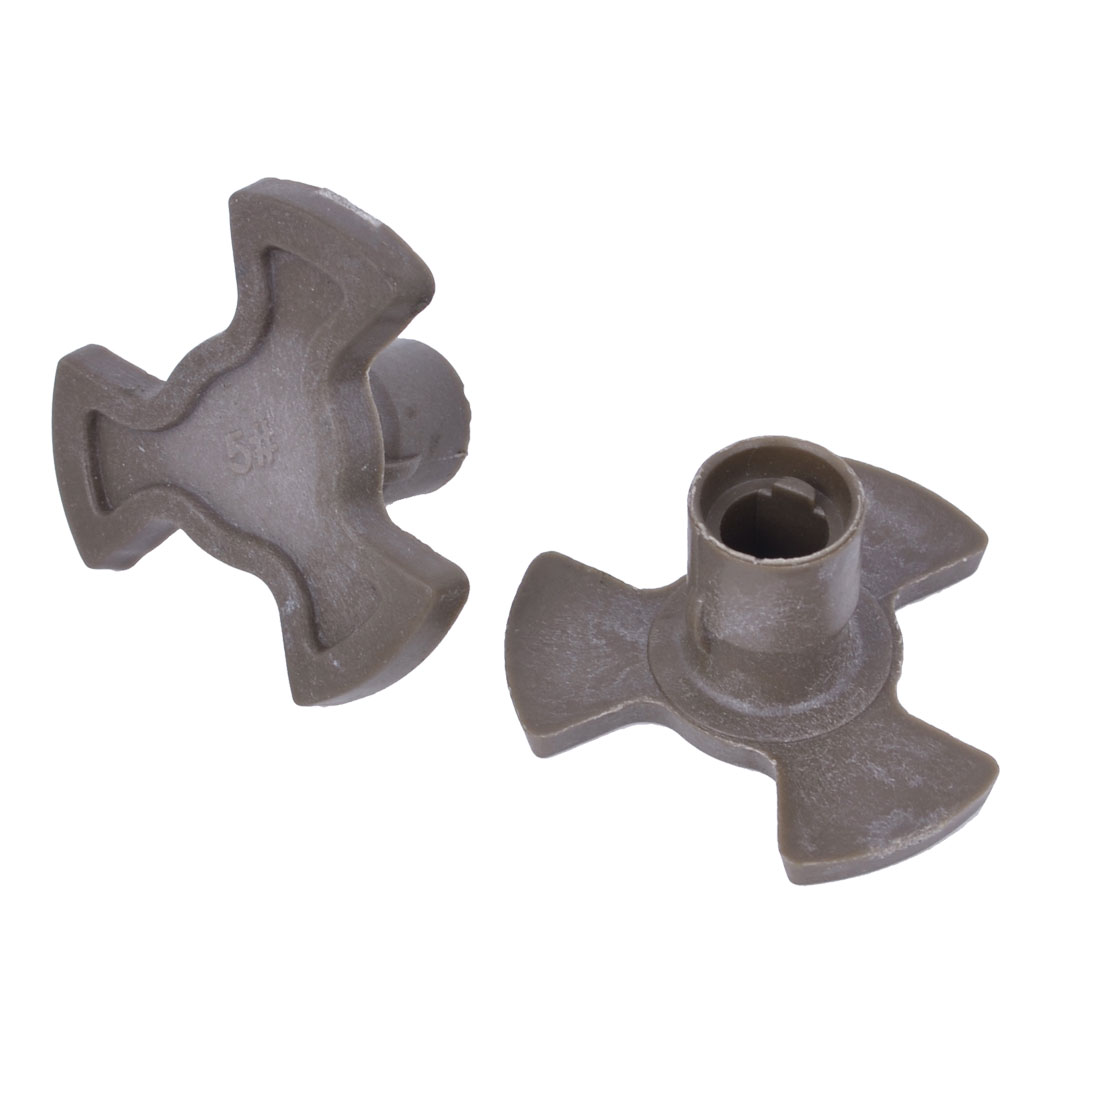 6mm Hole Khaki Plastic Microwave Oven Turntable Coupler 2 Pieces